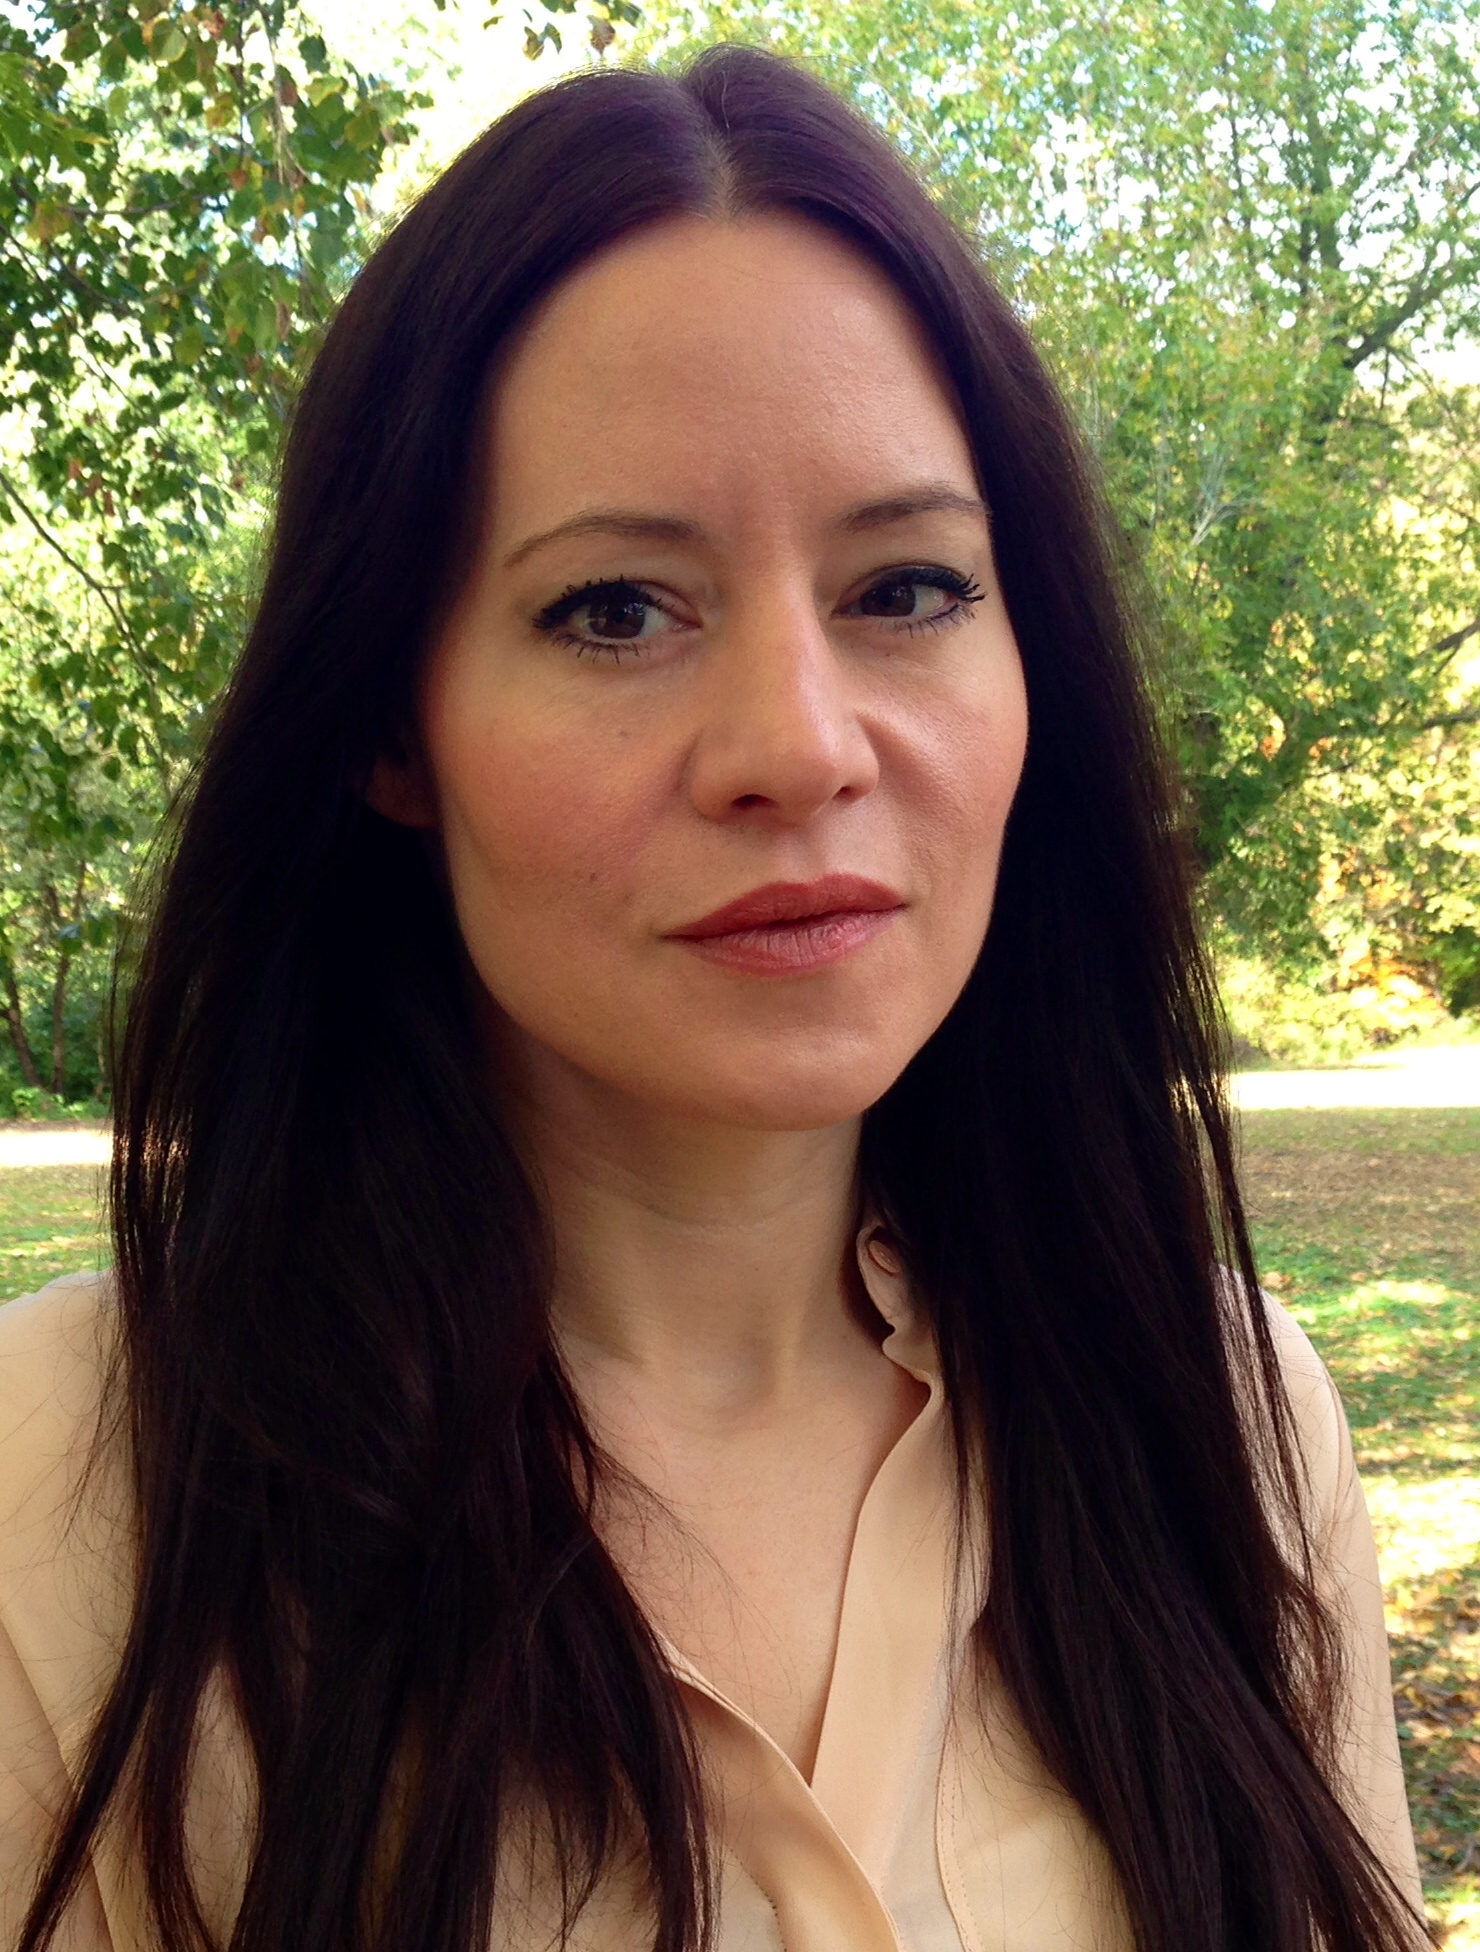 Jennifer Gosetti-Ferencei is Professor of Philosophy at Fordham University in New York City. She has authored a number of books, most recently  The Life of Imagination: Revealing and Making the World, forthcoming in 2018 with Columbia University Press.